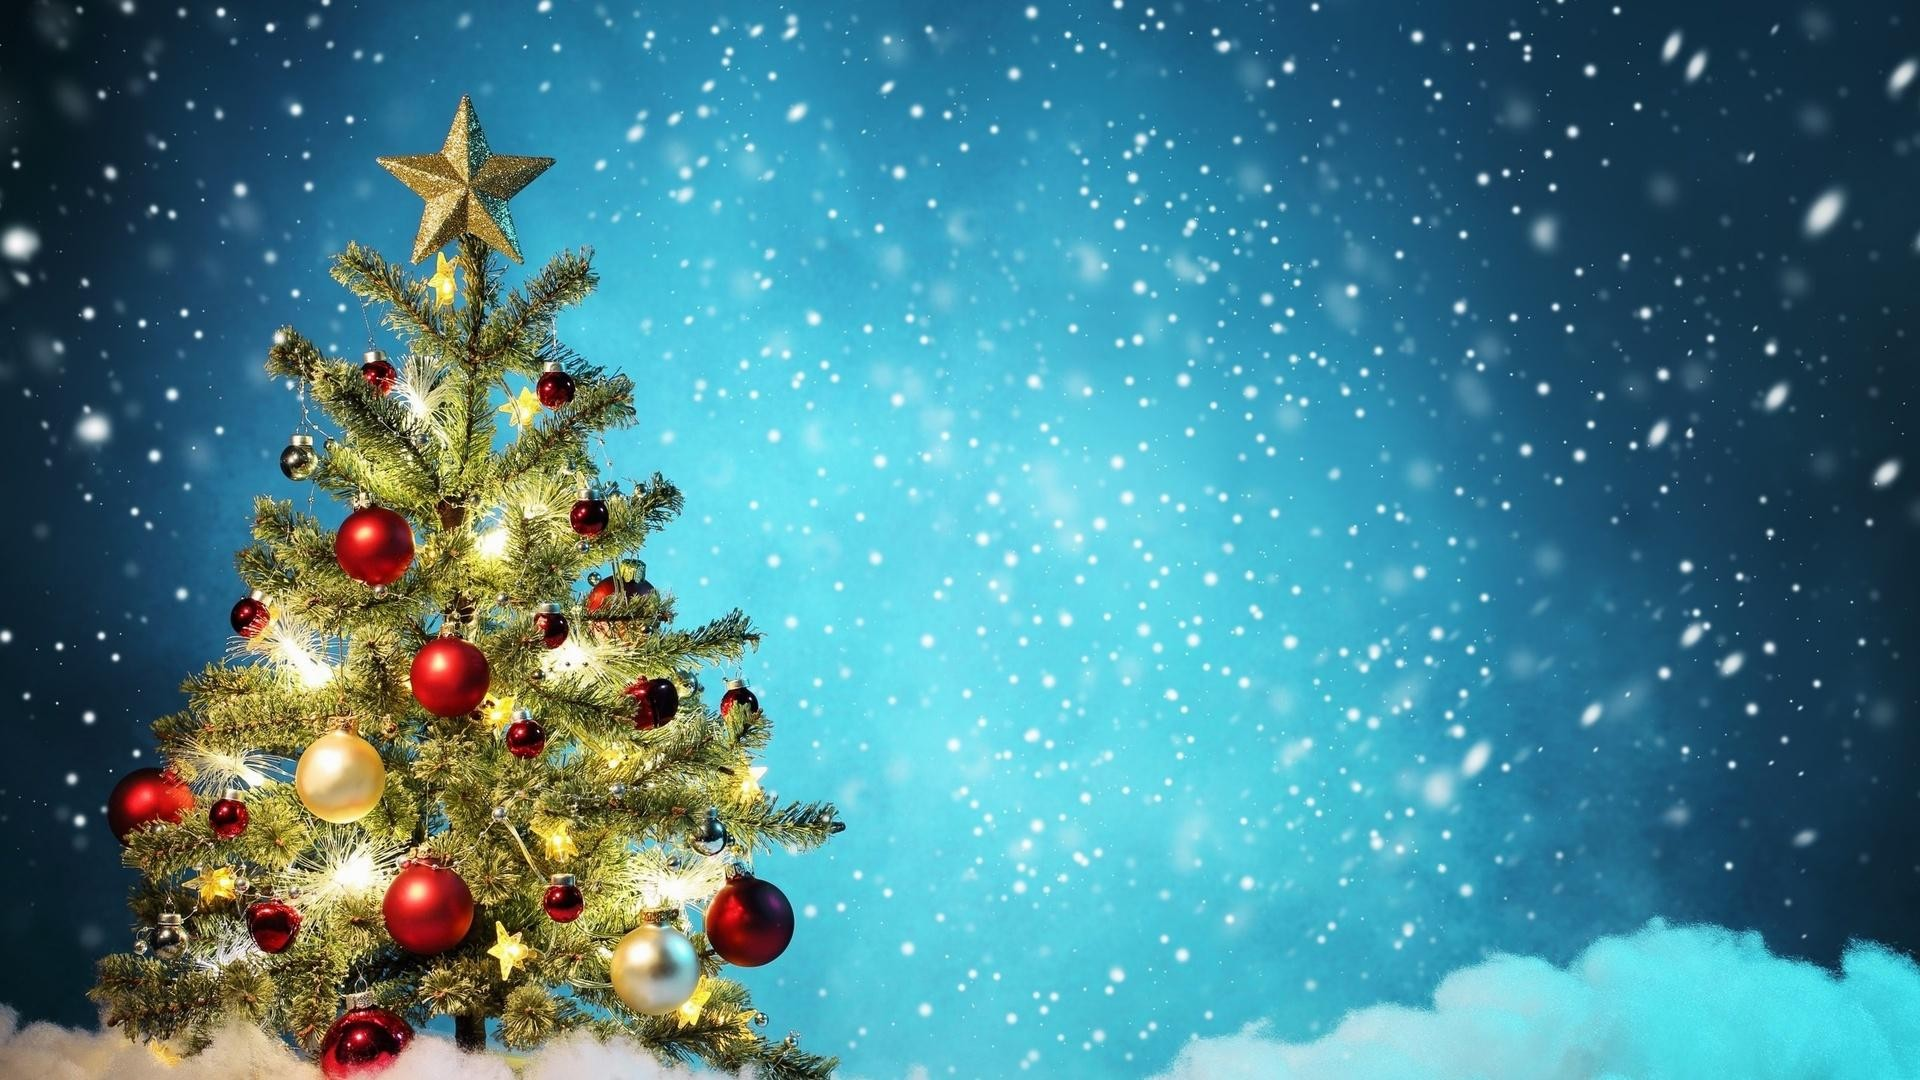 Christmas background images ·① Download free awesome full HD ...